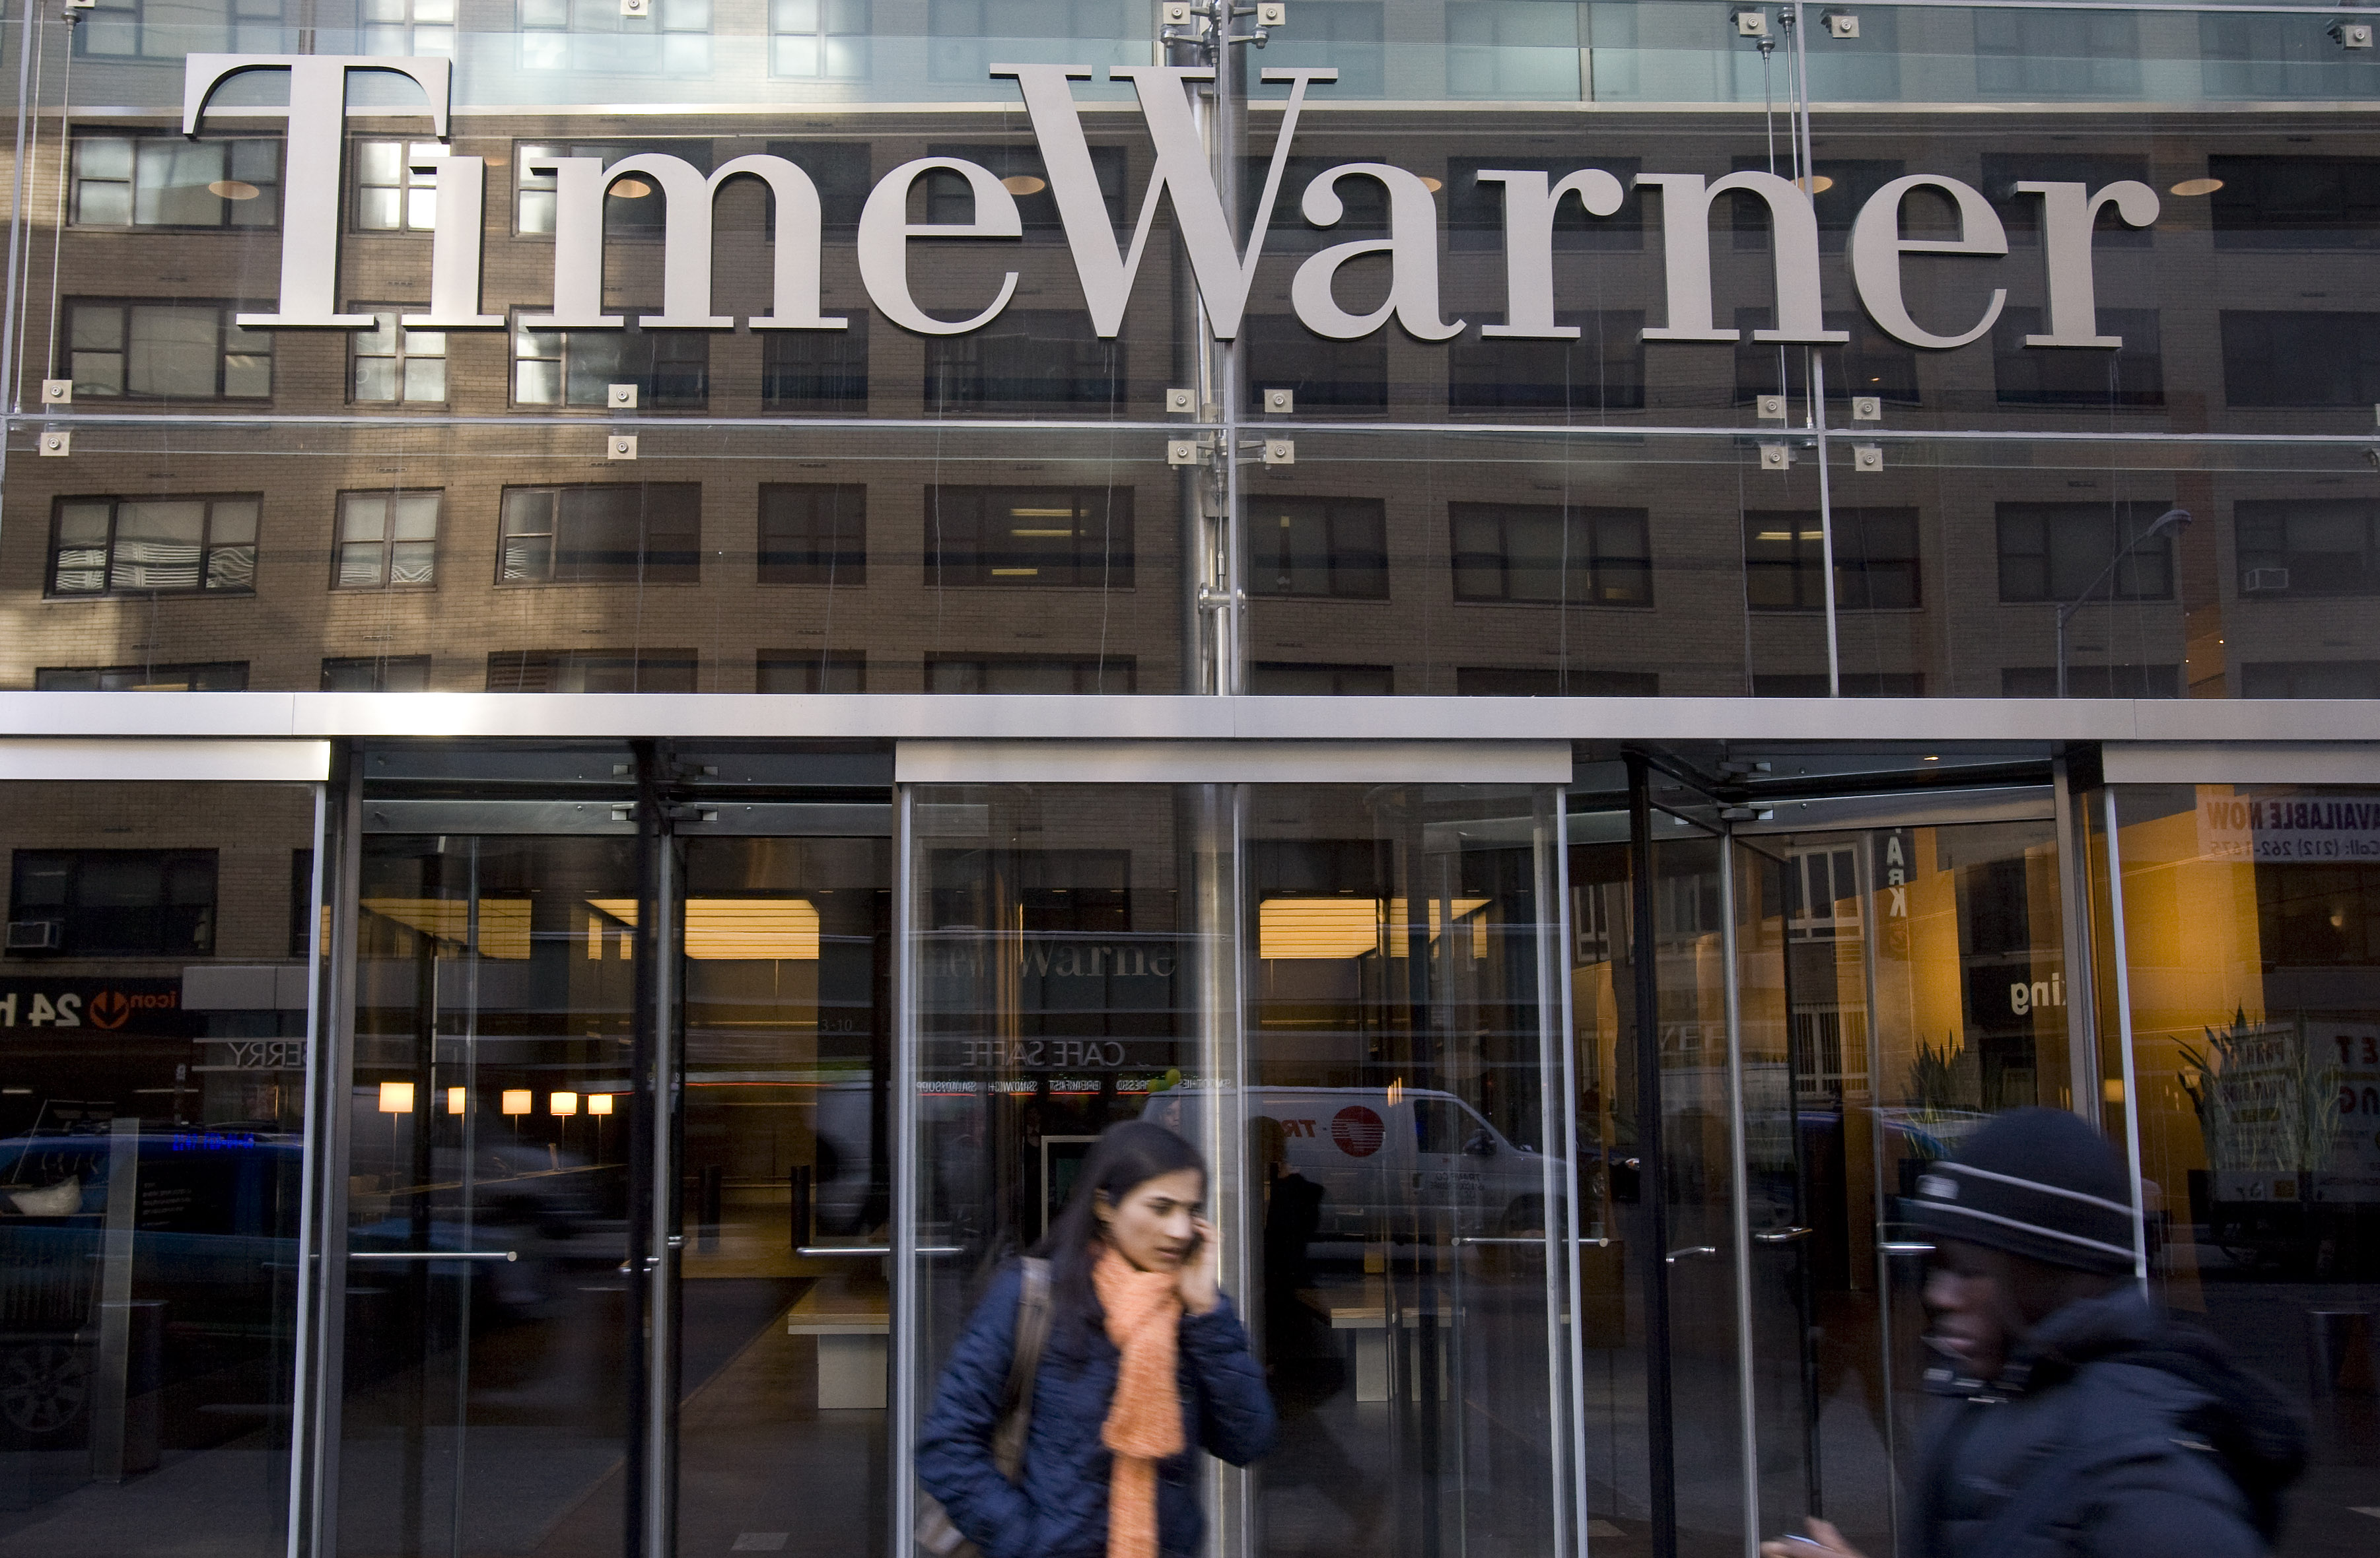 Pedestrians walk past the headquarters of Time Warner Inc. i